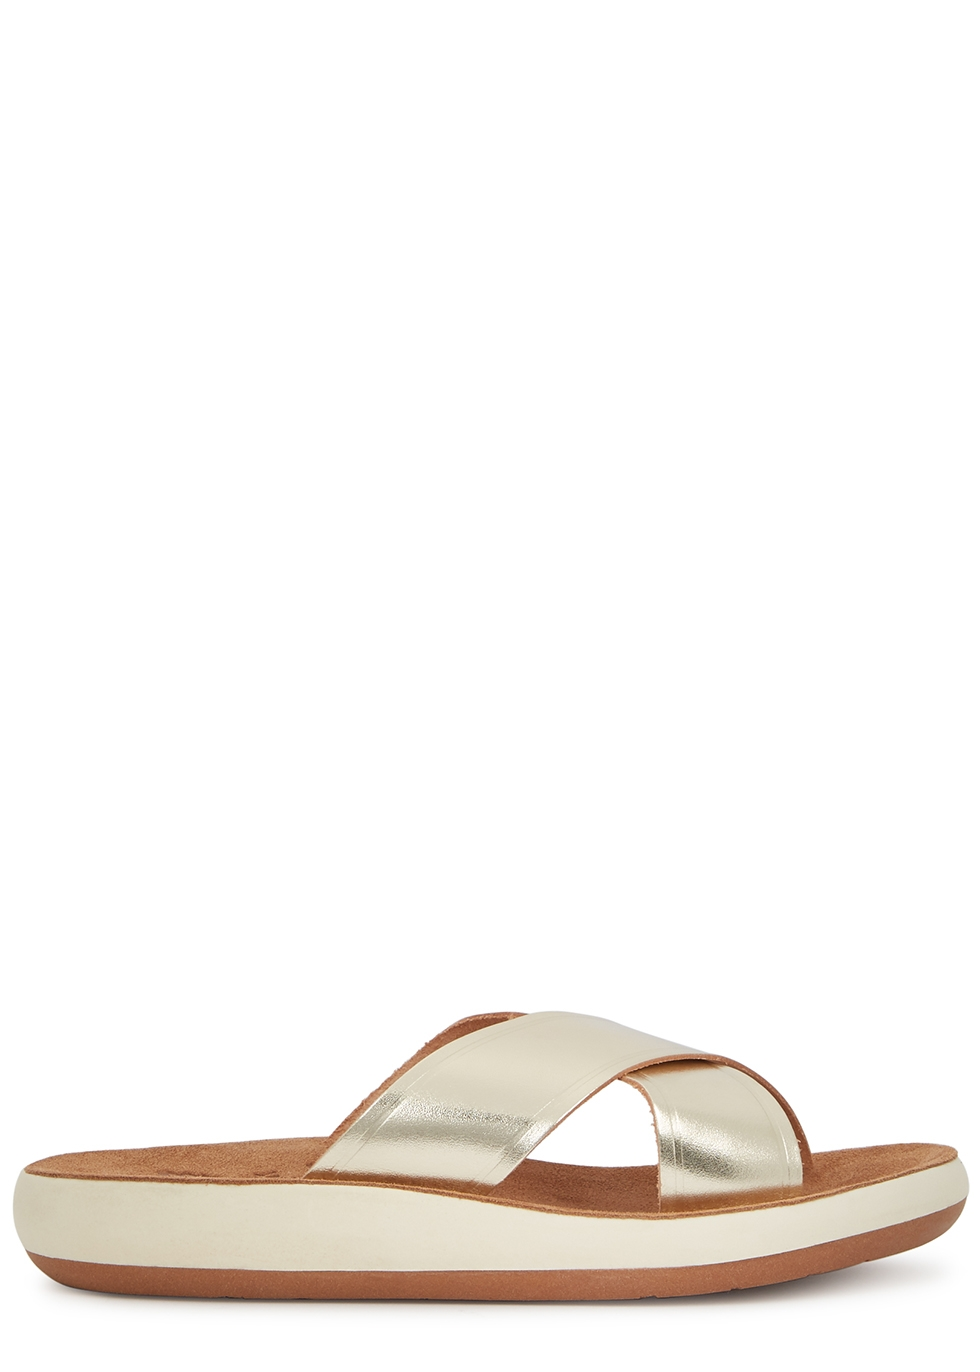 Thais gold leather sliders